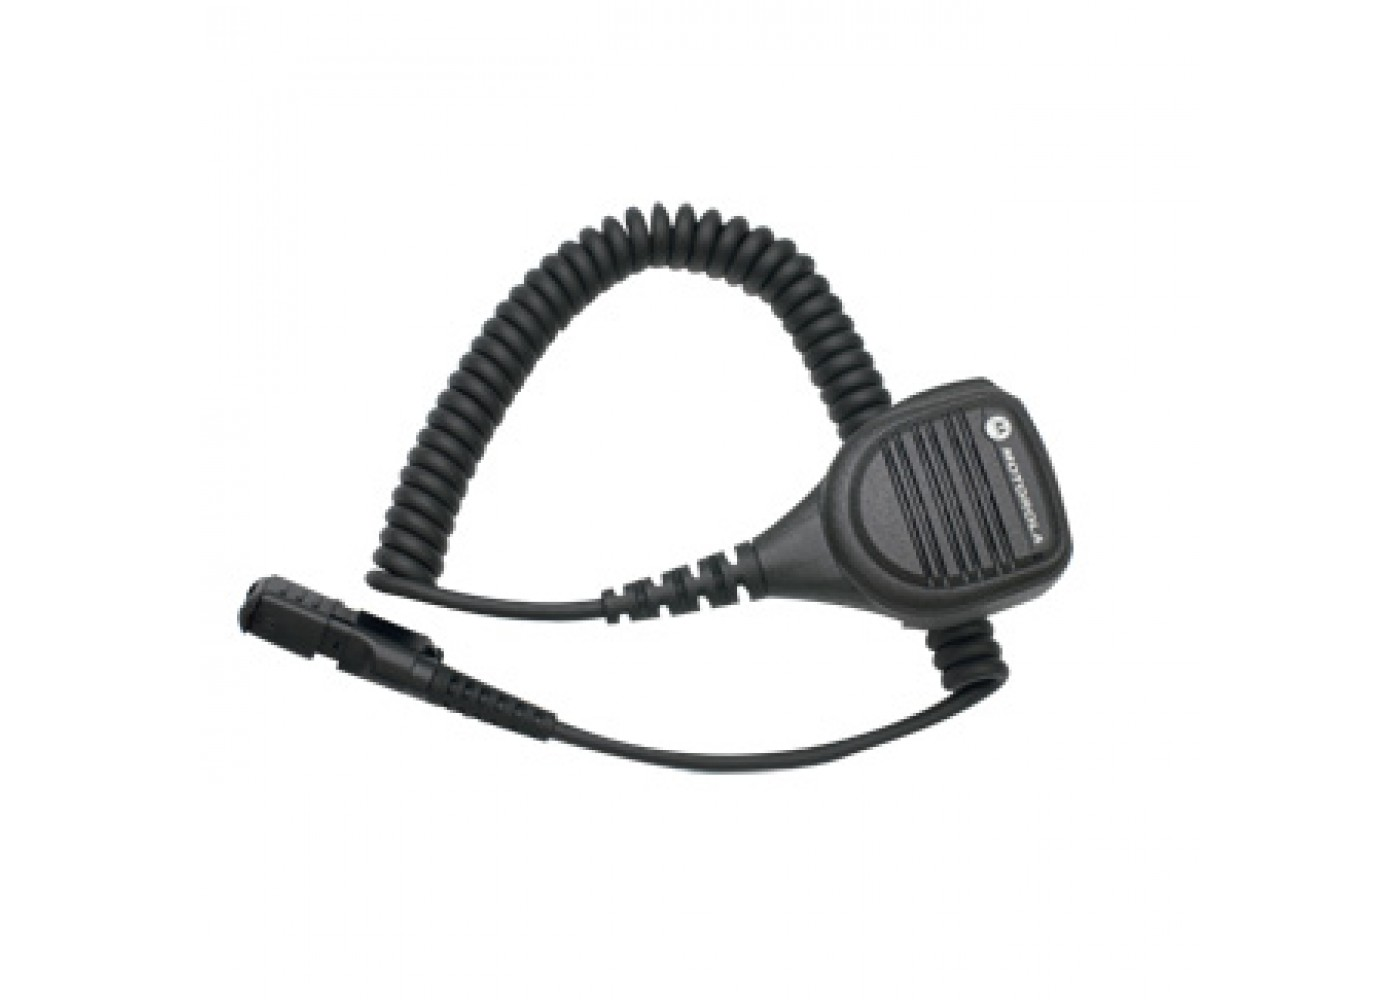 Motorola Pmln6533 Earbud Style Earpiece With Ptt besides Pmkn4018 Mobile Rear Accessory Connector Universal Cable moreover Motorola Pmmn4075 Windporting Submersible Small Rsm additionally Motorola Hkln4424a Swivel Earpiece With In Line Push To Talk as well Motorola Pmln6536 Black 2 Wire Earpiece Mic Ptt Qd Tube. on motorola fire portable radios